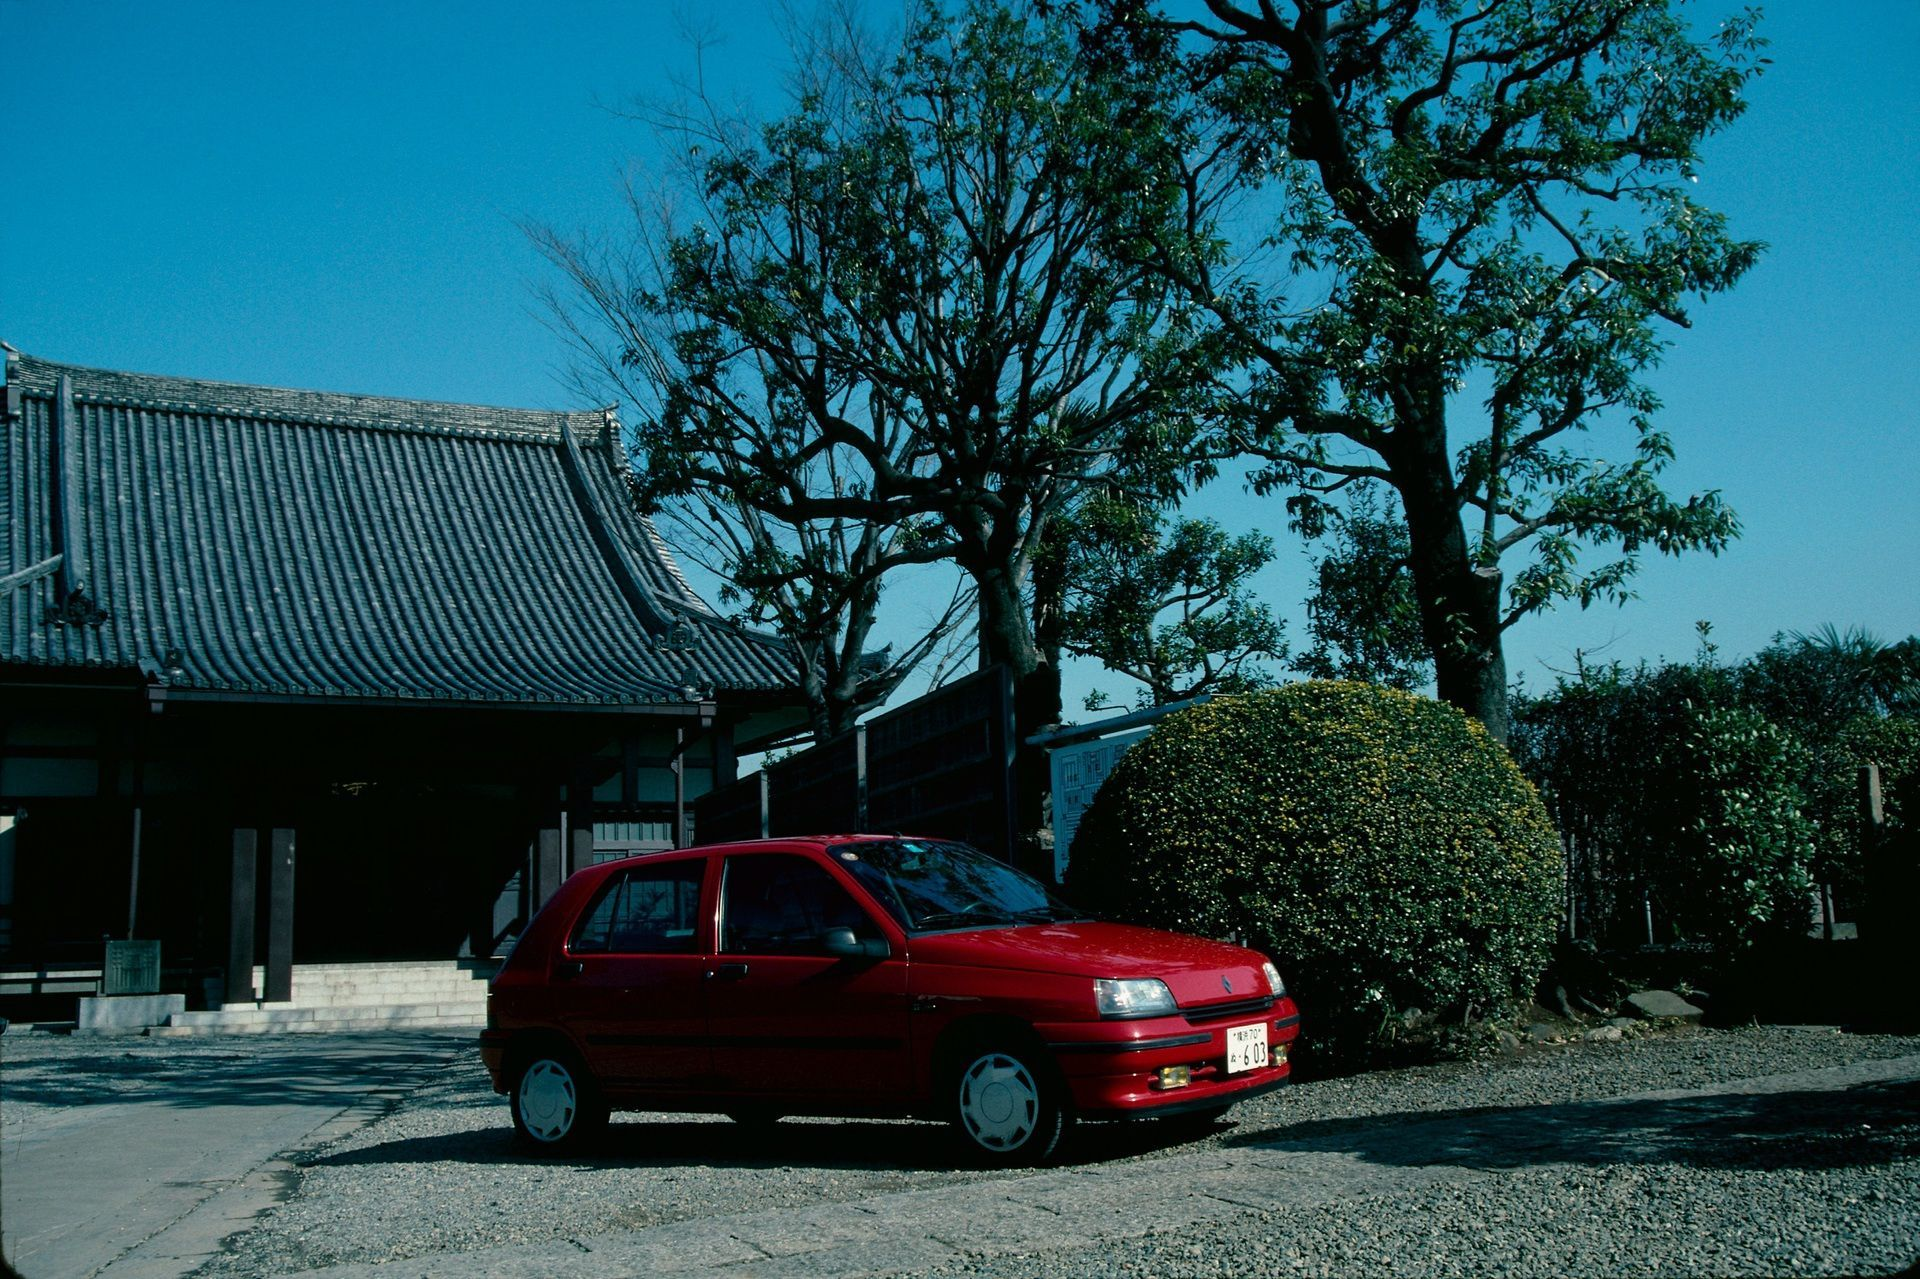 2020-30-years-of-Renault-CLIO-Renault-CLIO-I-1990-1999-25